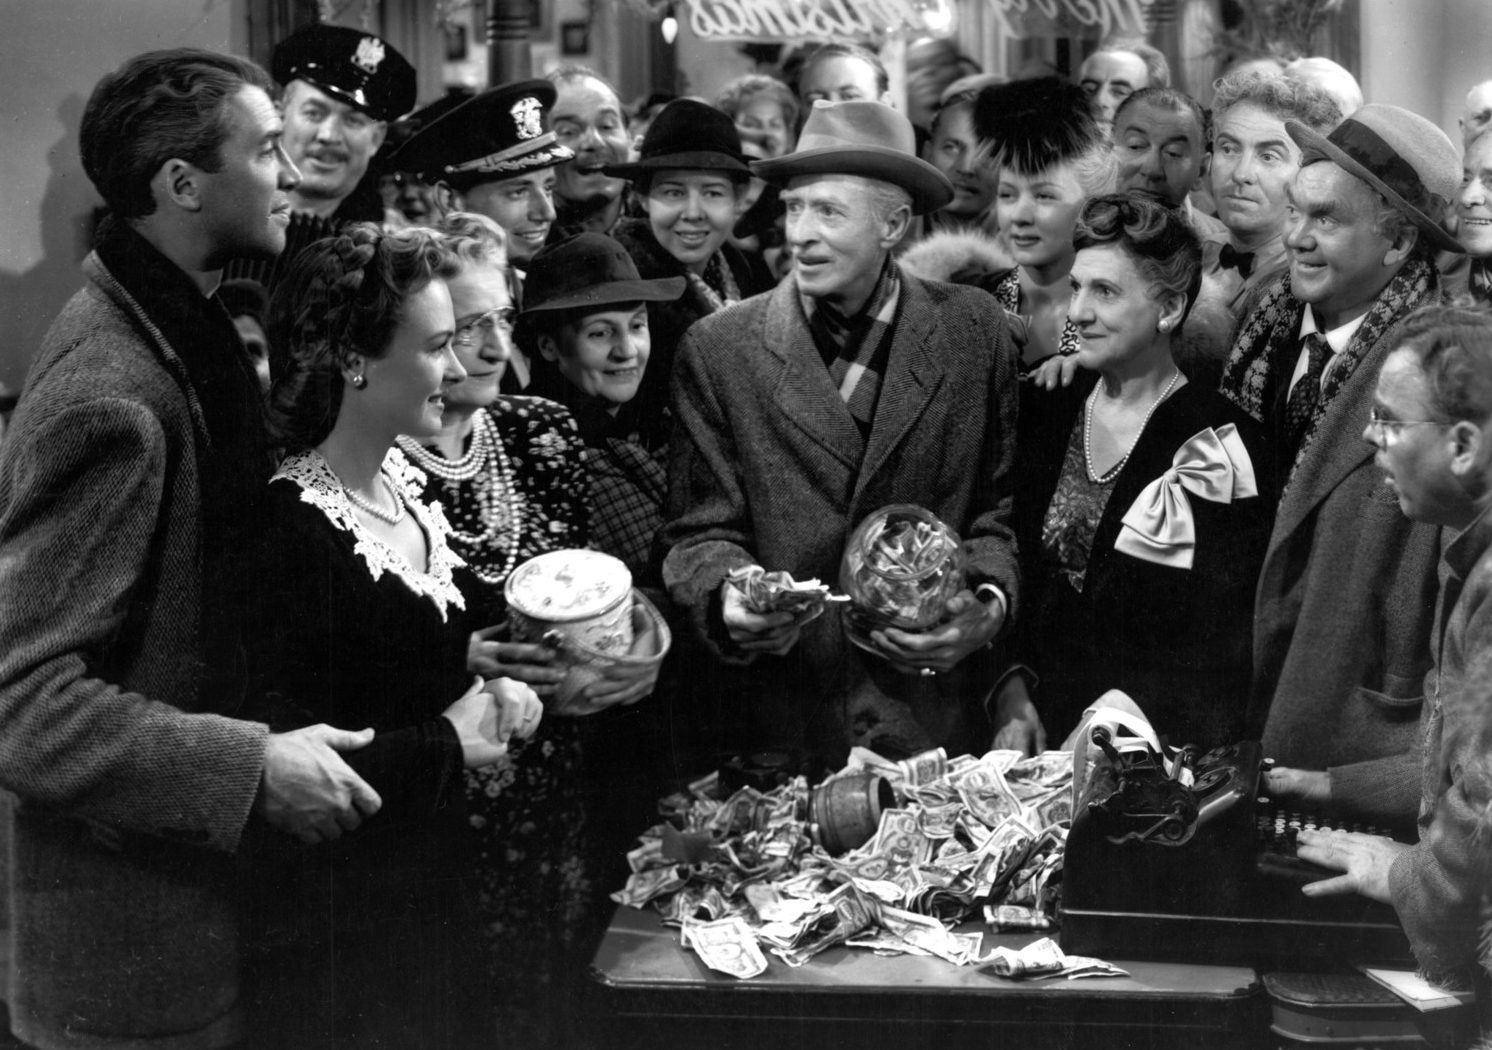 The scene in Its a Wonderful Life where the townspeople support George Bailey, played by James Stewart.